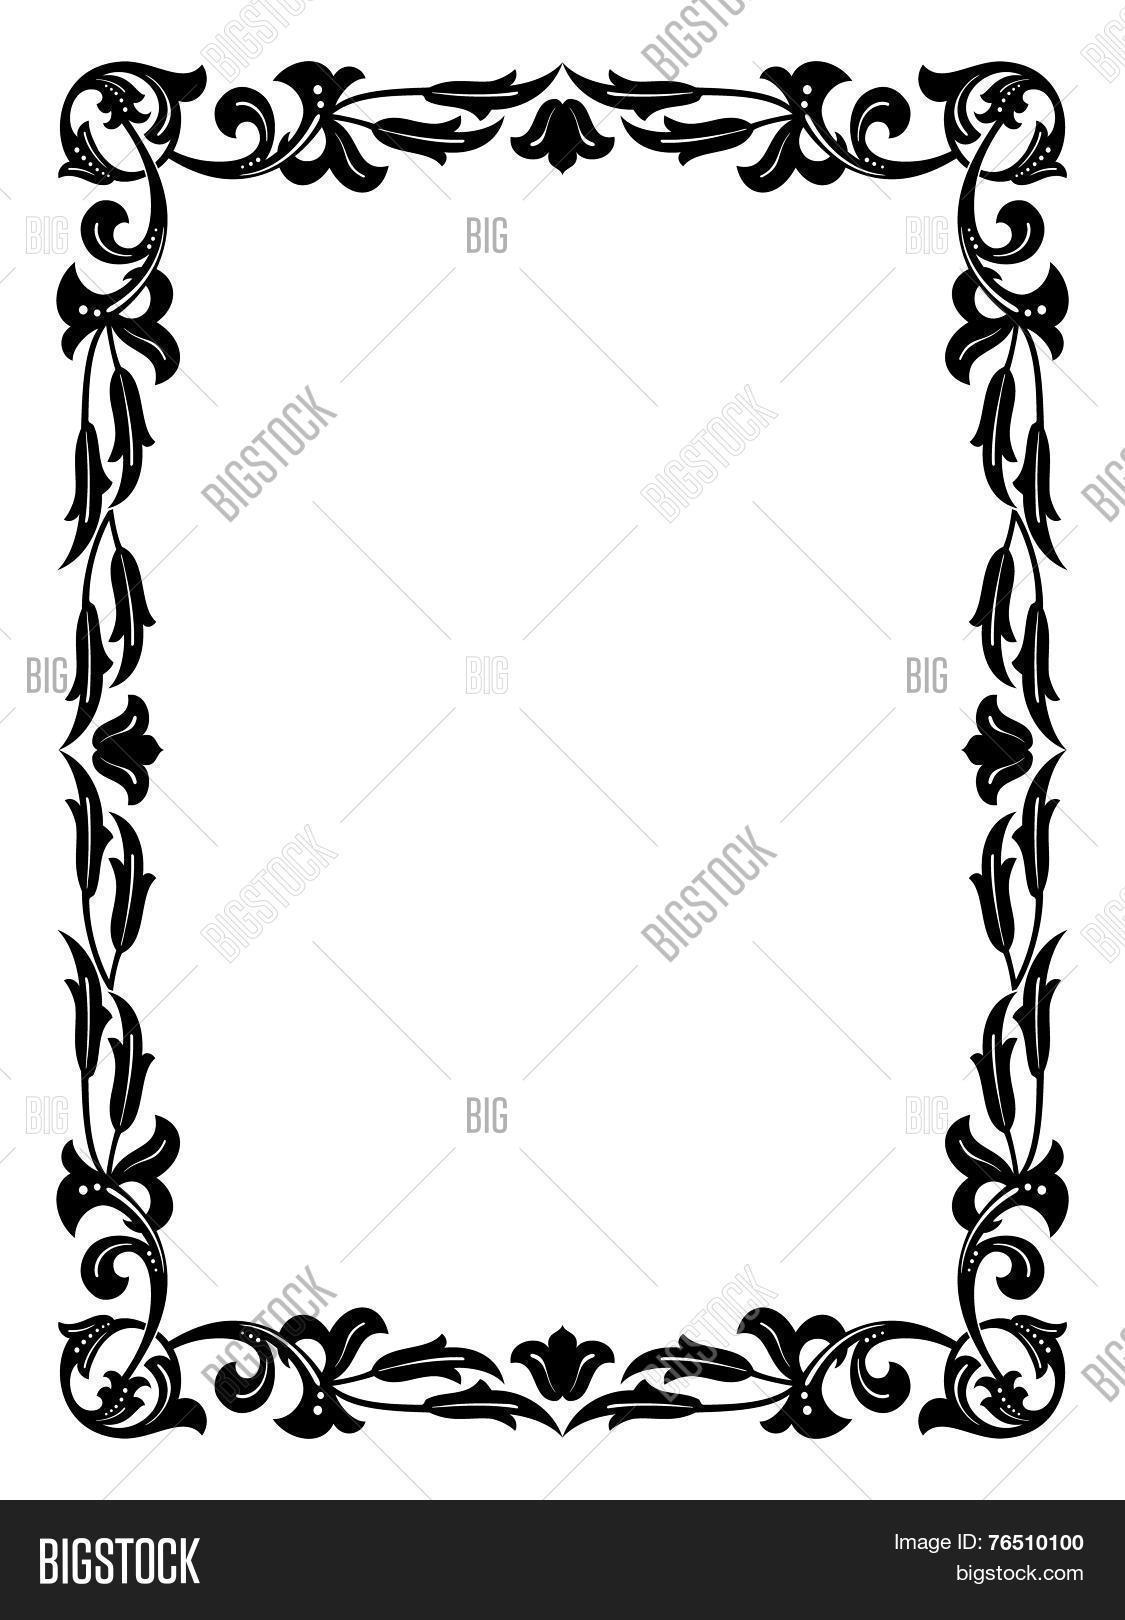 Calligraphy Vector & Photo (Free Trial) | Bigstock